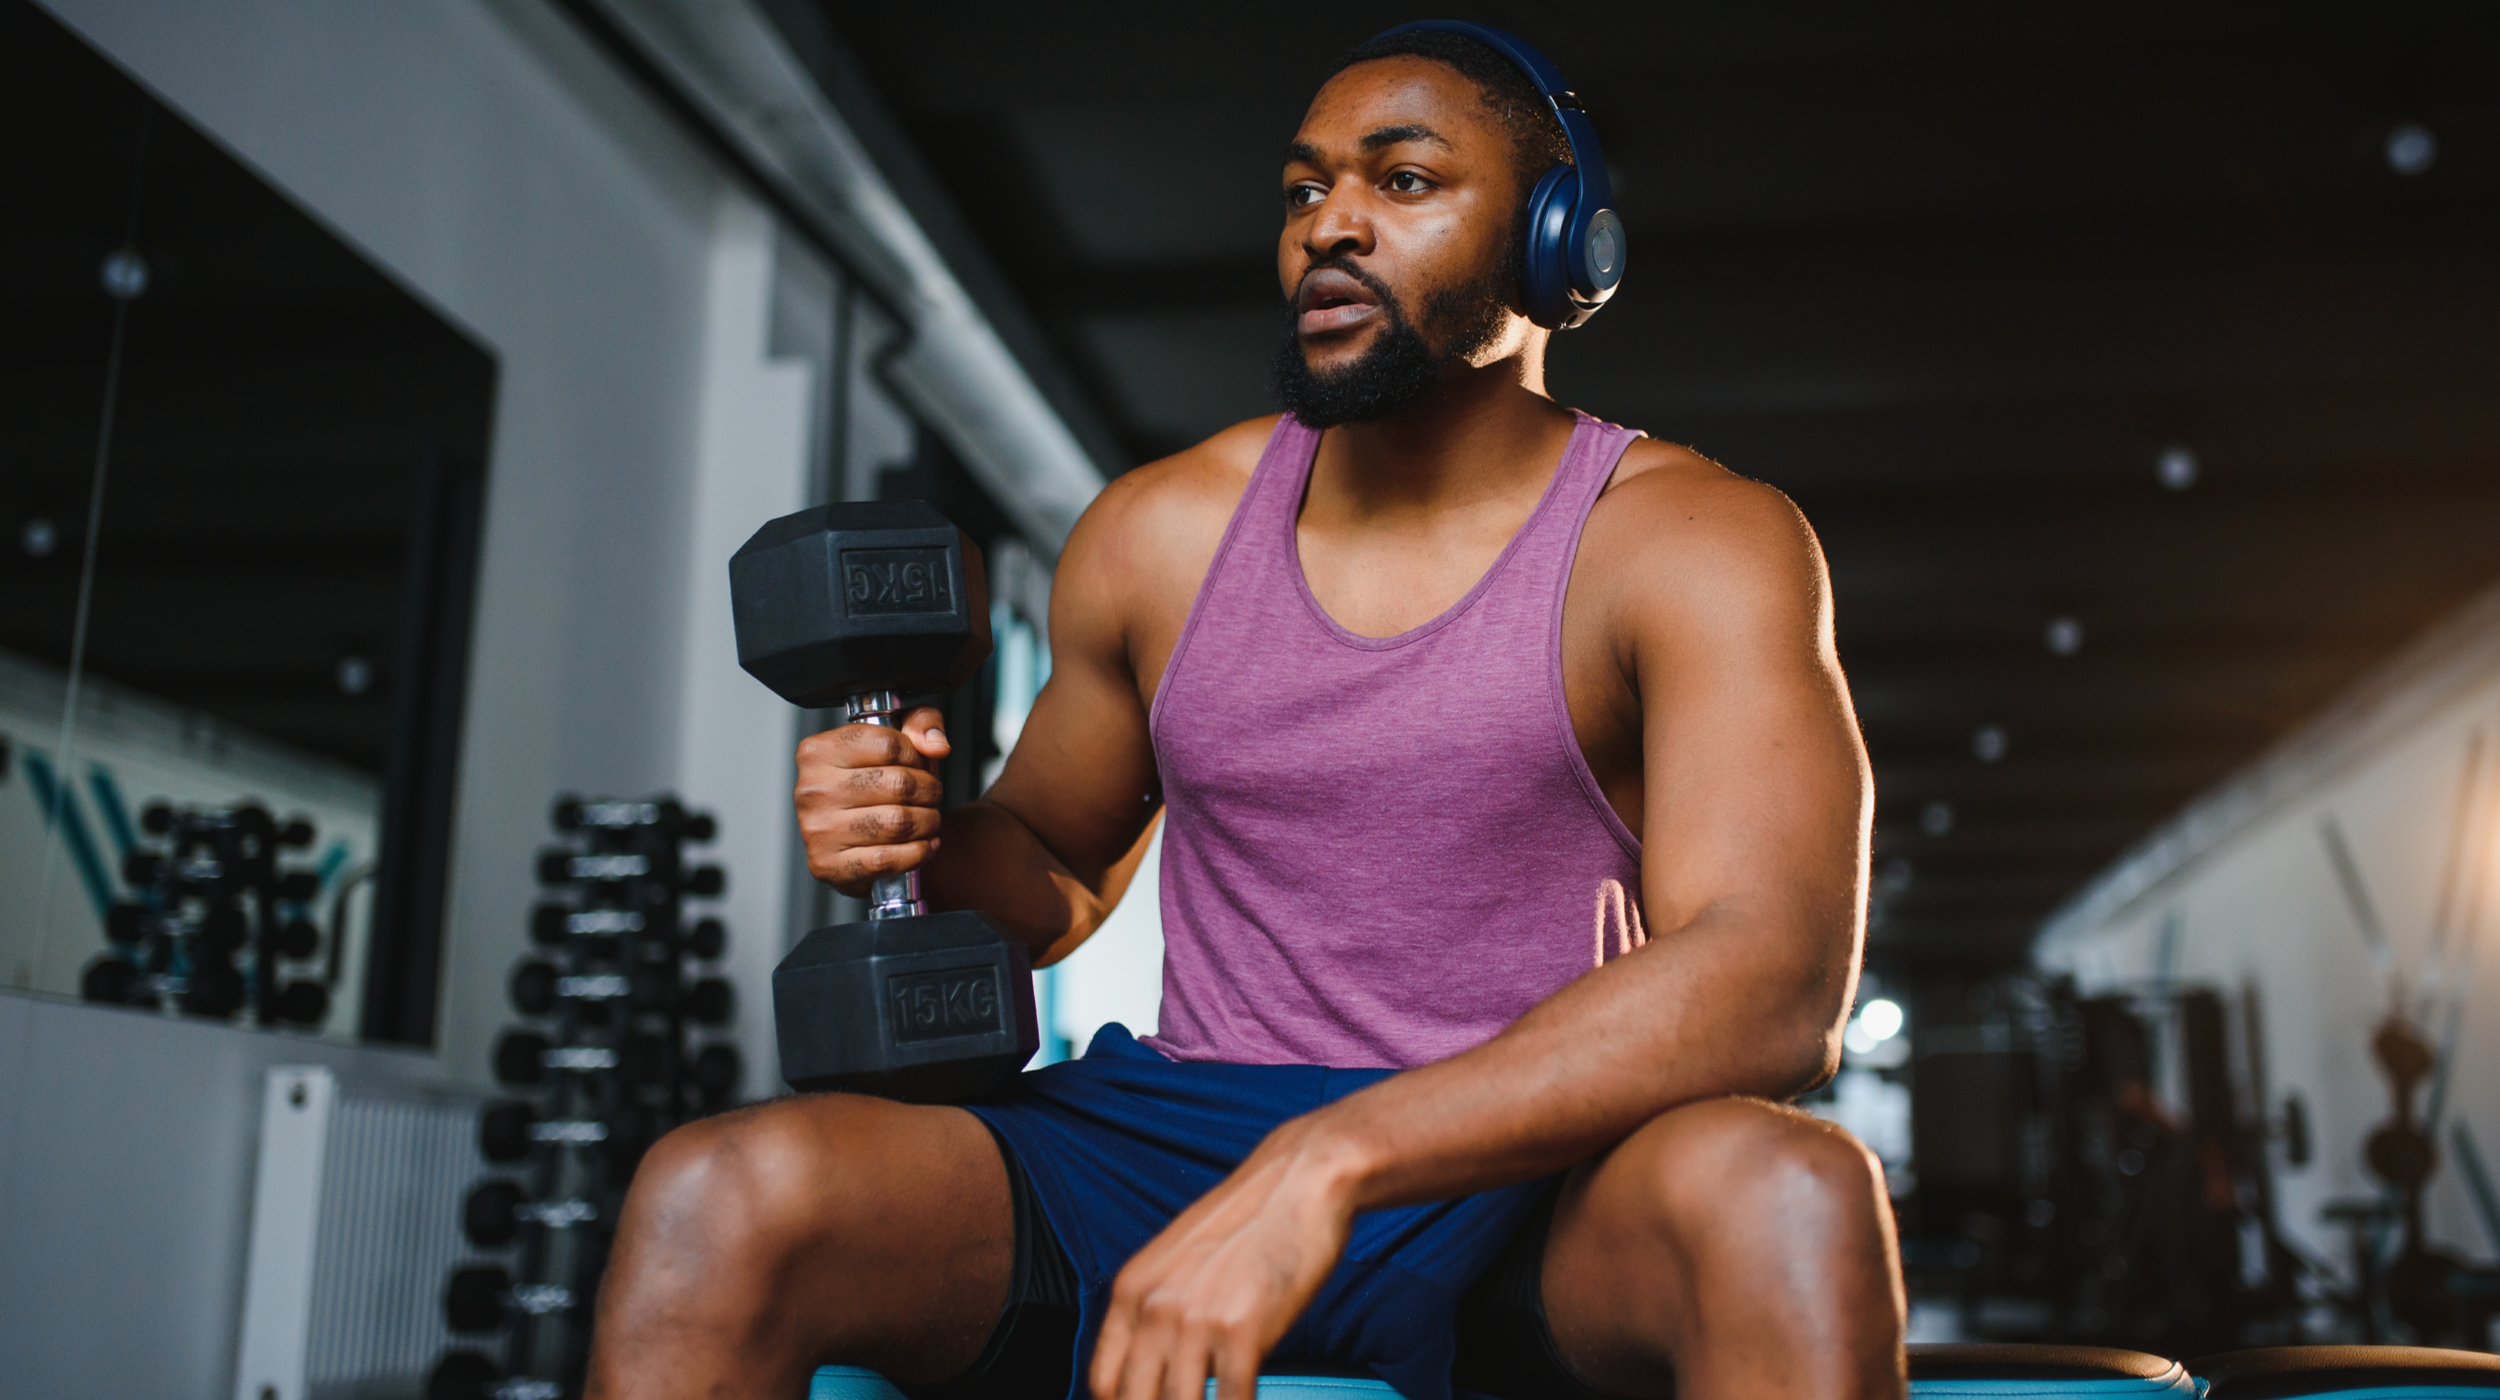 How to Pack on Muscle if You are Skinny